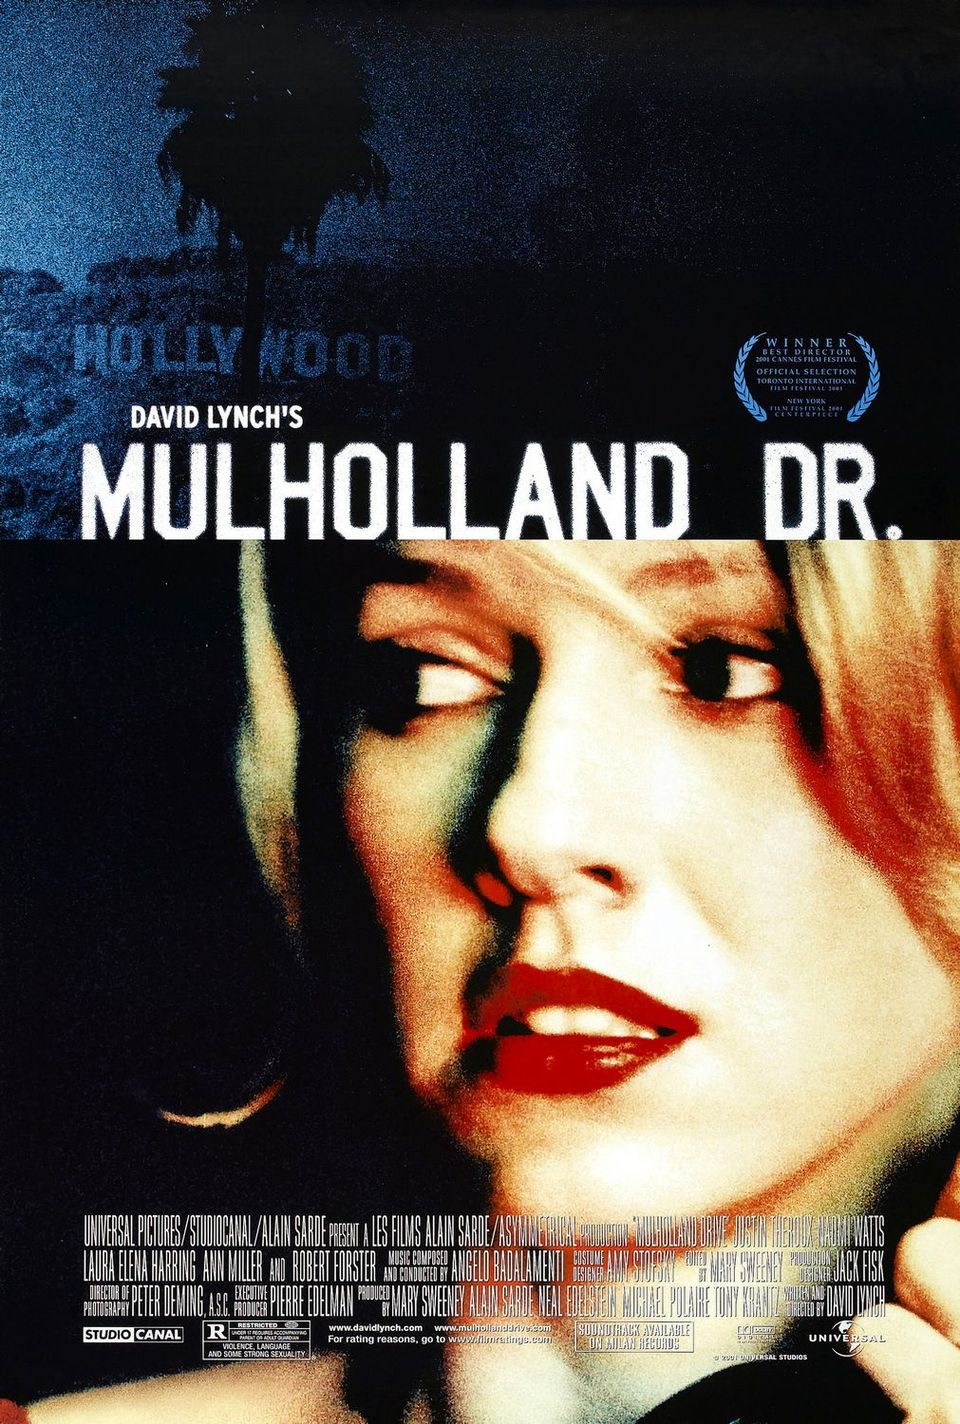 EEUU poster for Mulholland Dr.